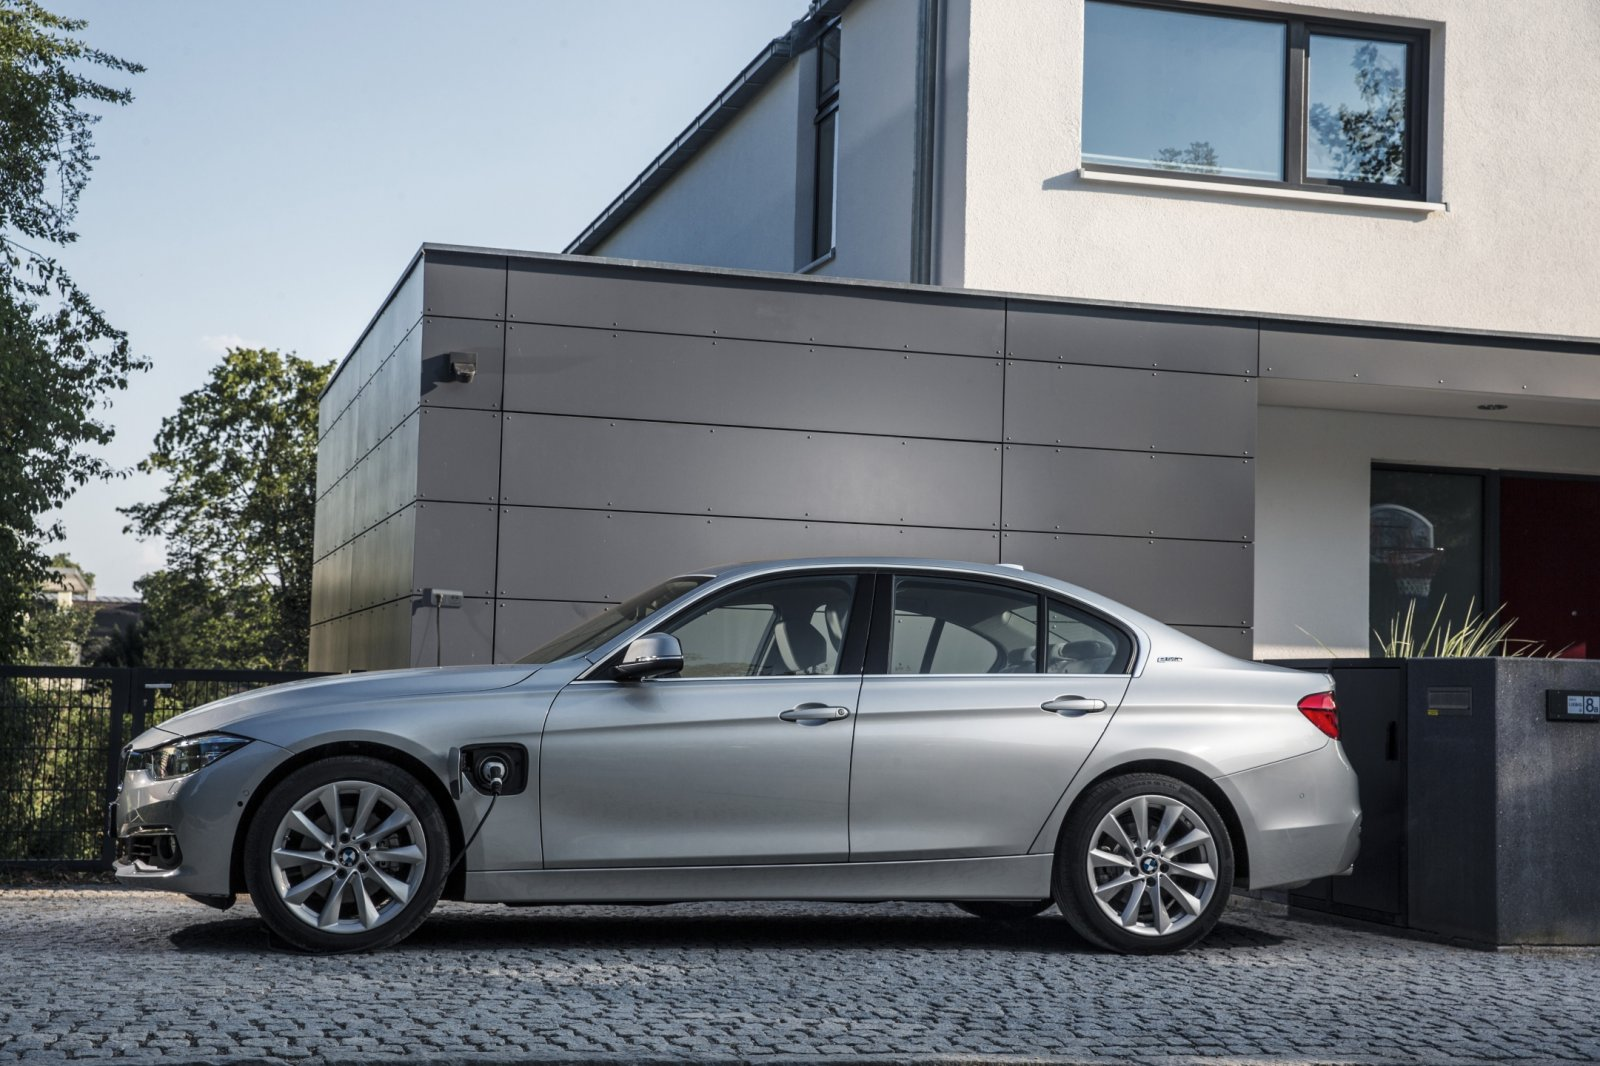 bmw aan de plug in hybride alles over de 225xe en 330e drivessential. Black Bedroom Furniture Sets. Home Design Ideas